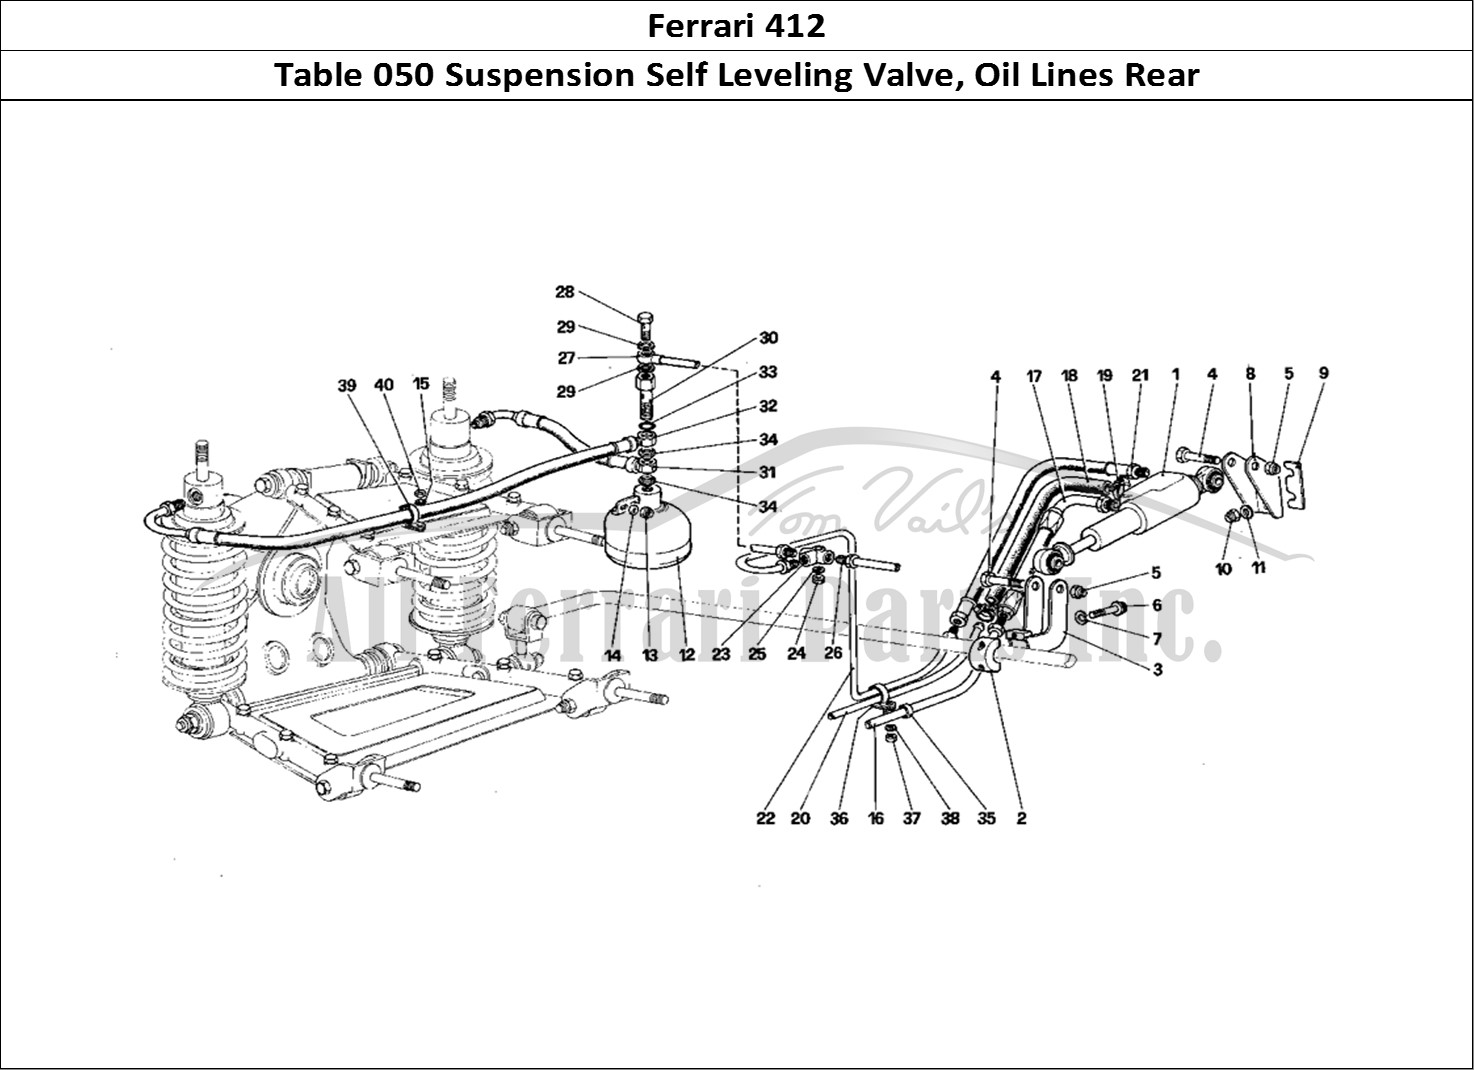 Buy original Ferrari 412 050 Suspension Self Leveling